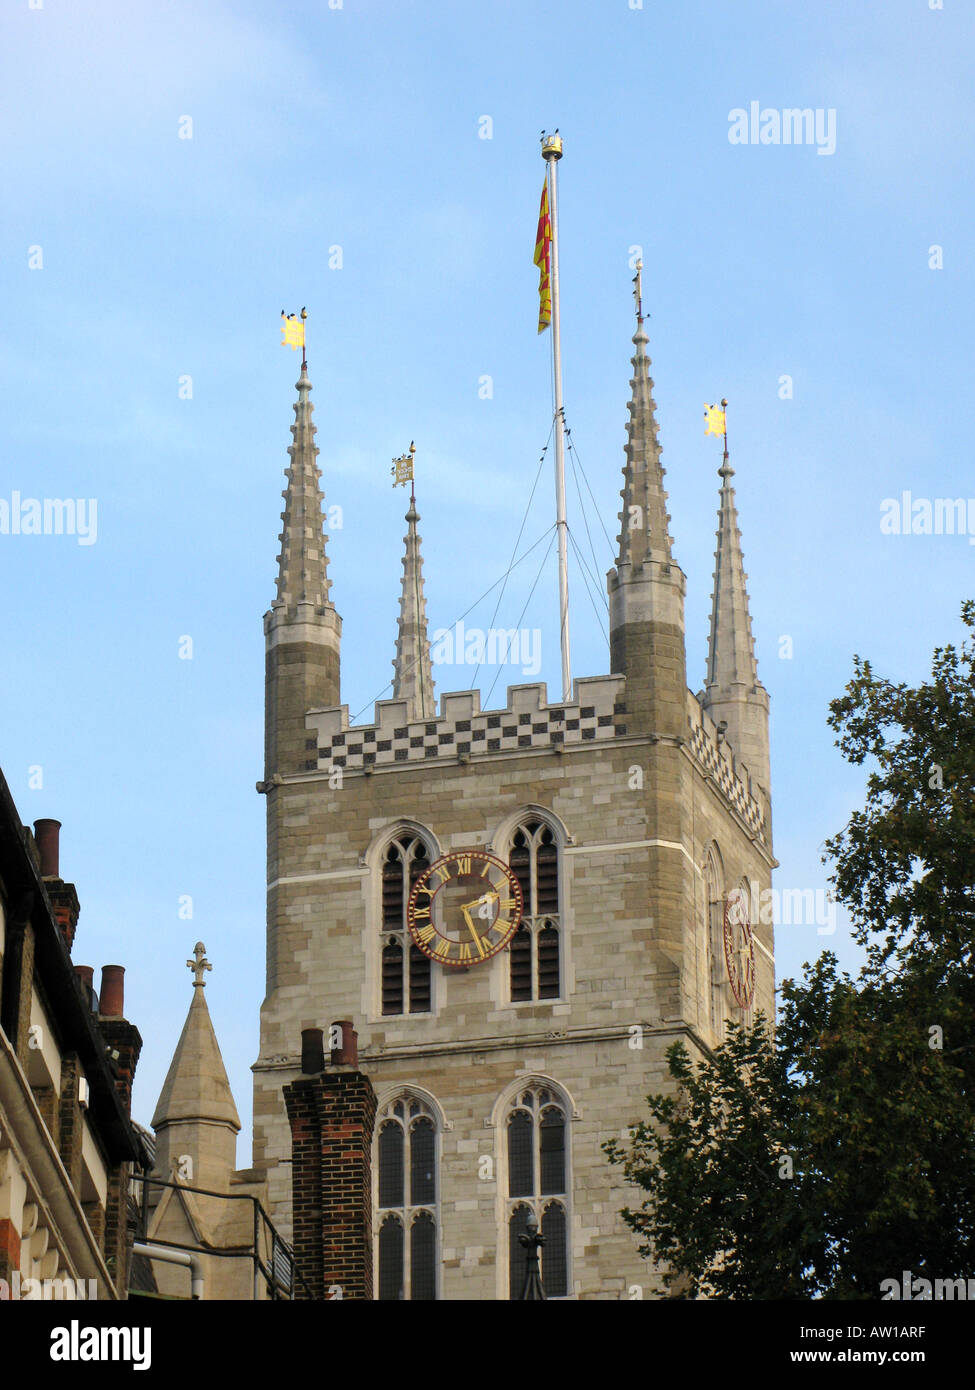 Cathedral and Collegiate Church of Saint Saviour and St Mary Overie Southwark - 1 - Stock Image